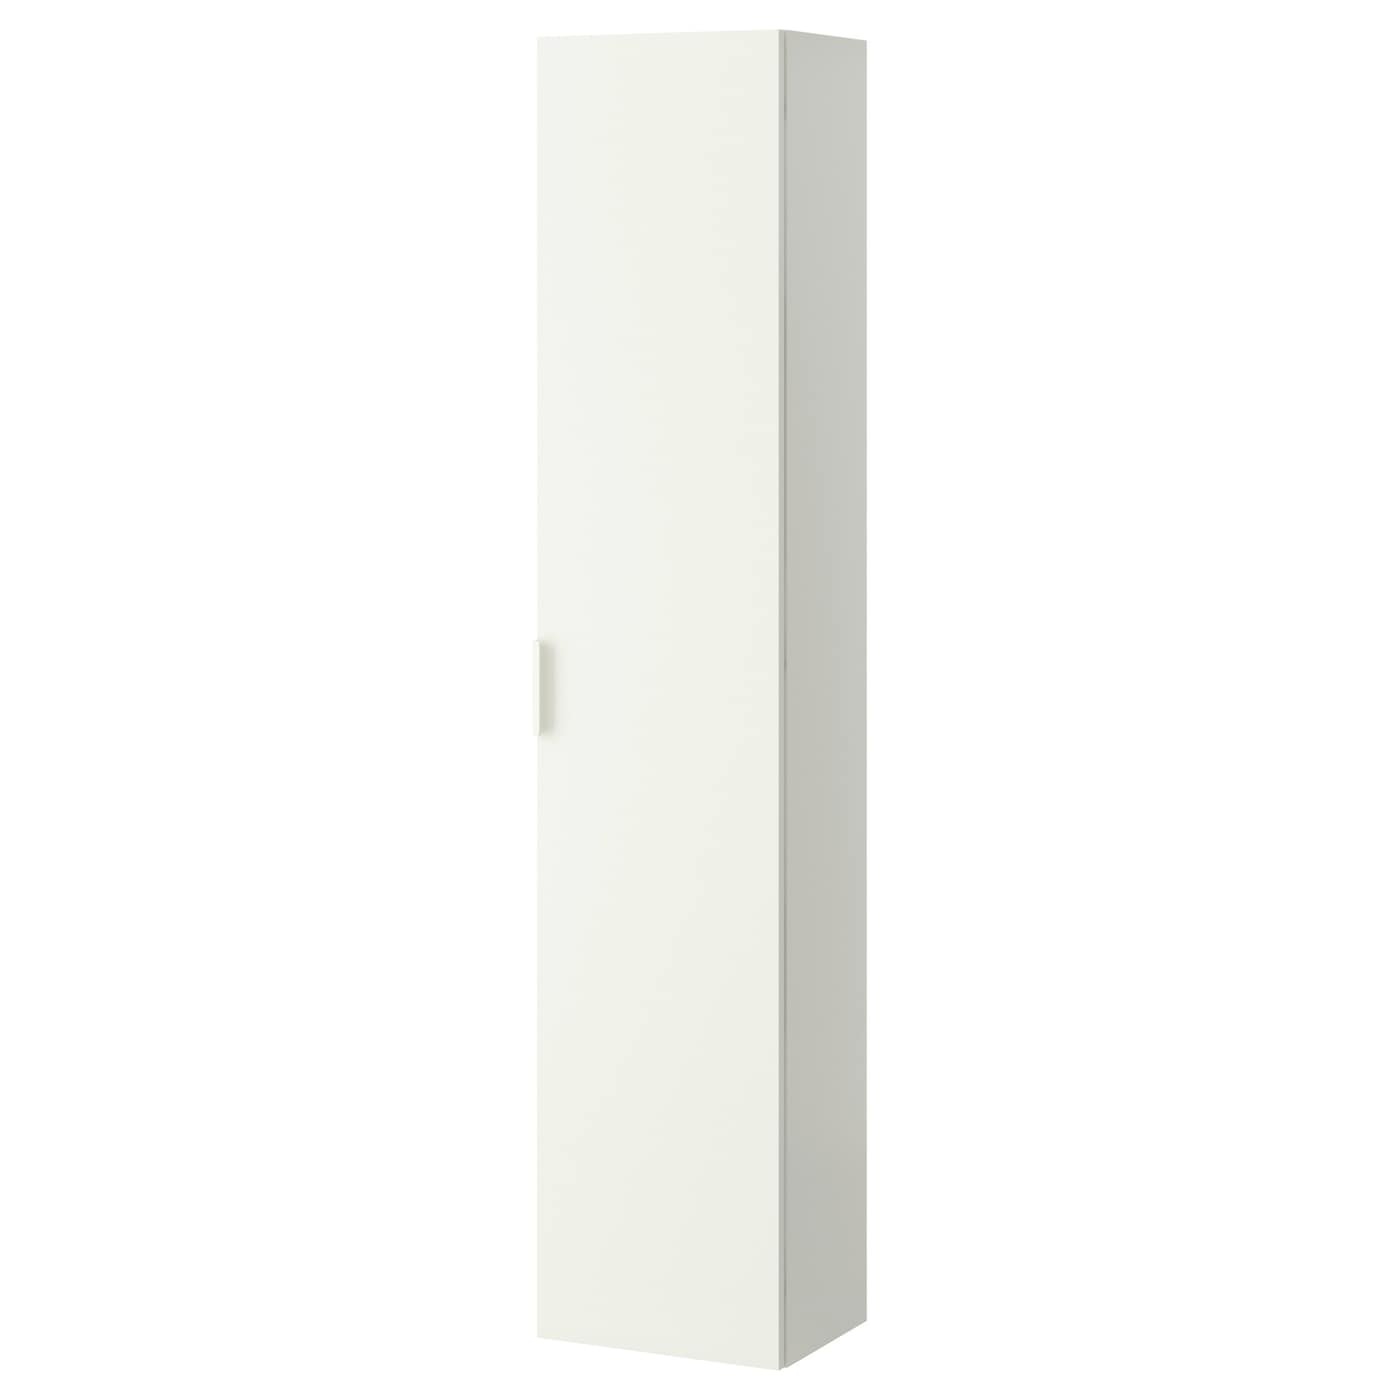 Tall bathroom cabinets ikea ireland dublin for Bathroom cabinets 40cm wide